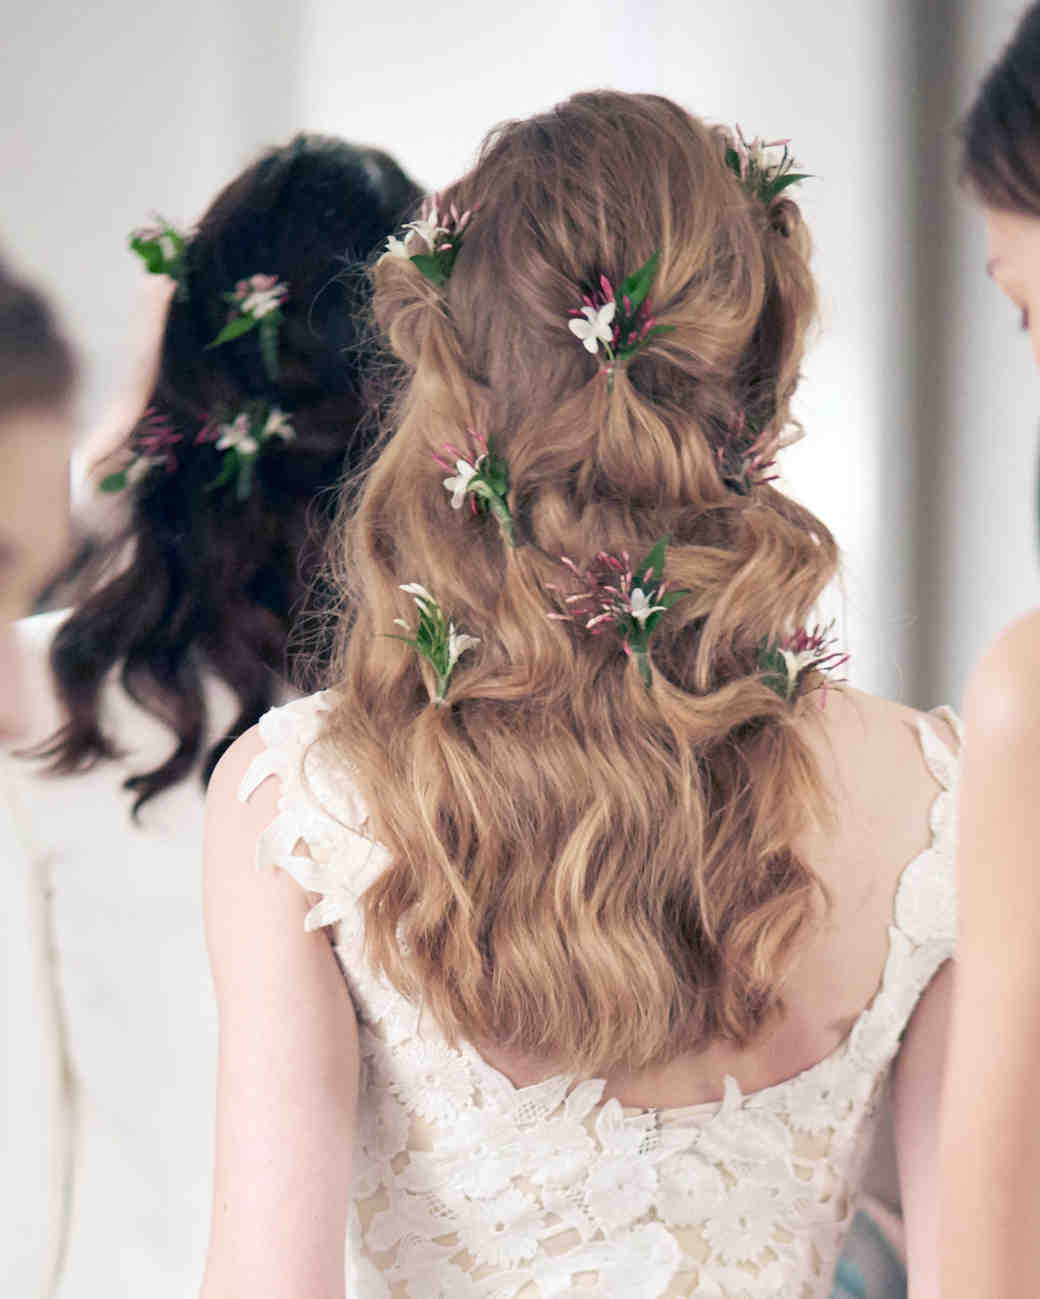 Hairstyle Ideas For Wedding: 96 Fun Facts About Your Favorite Bridal Designers